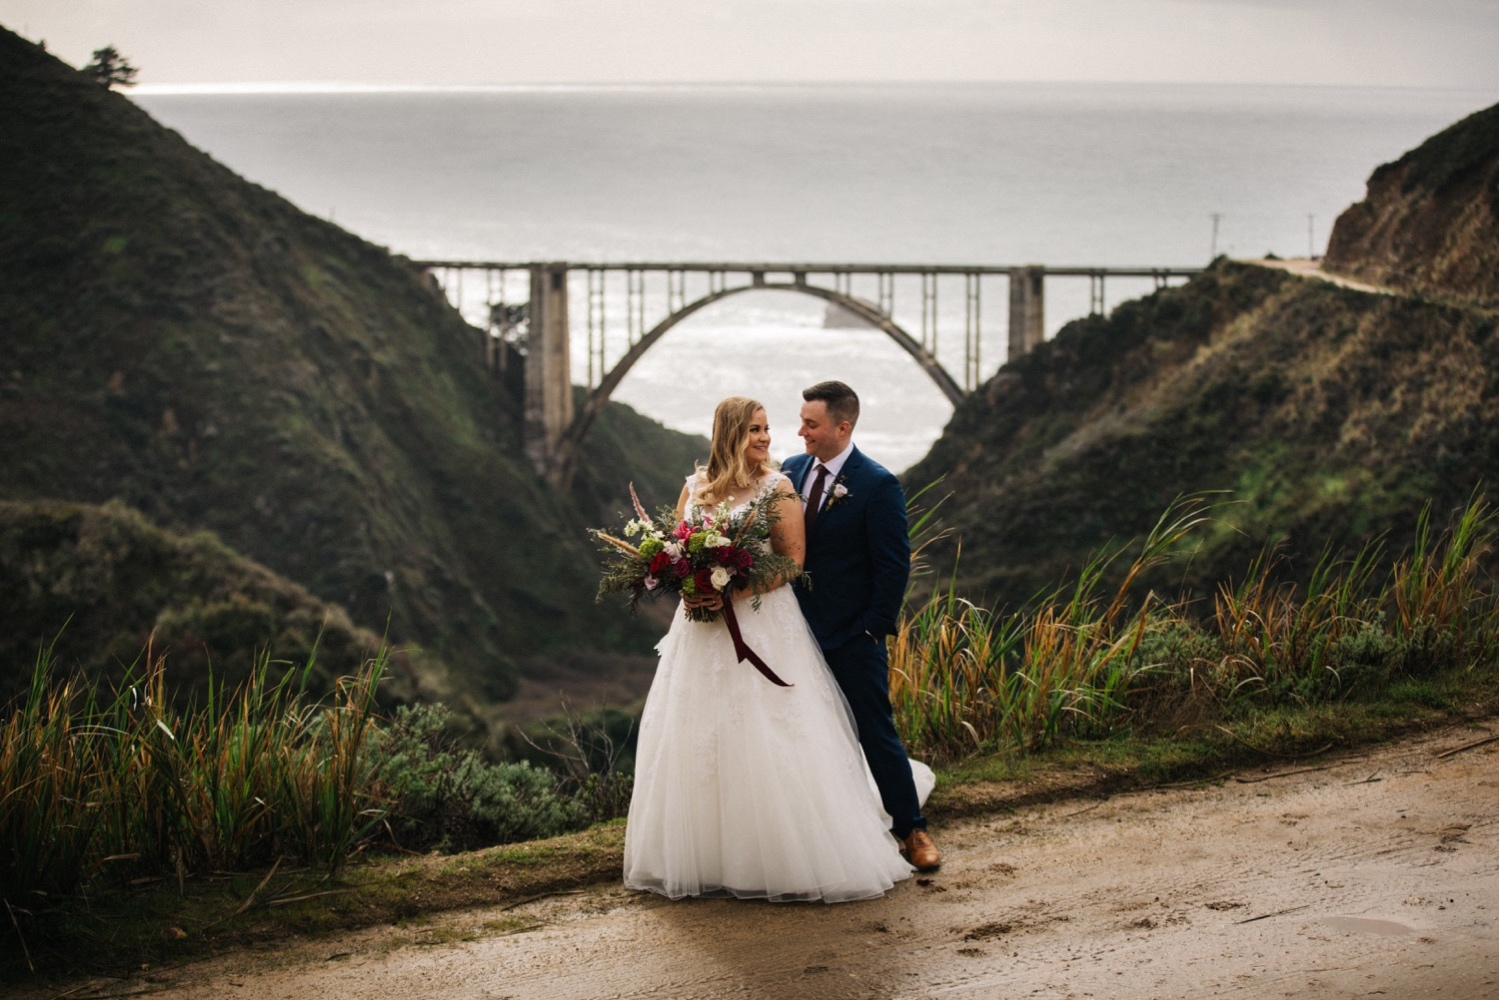 Featured: Bixby Bridge, made famous in my mind by The Bixby Canyon Bridge by Death Cab For Cutie. Very sad song, not wedding appropriate but I'm really into it.